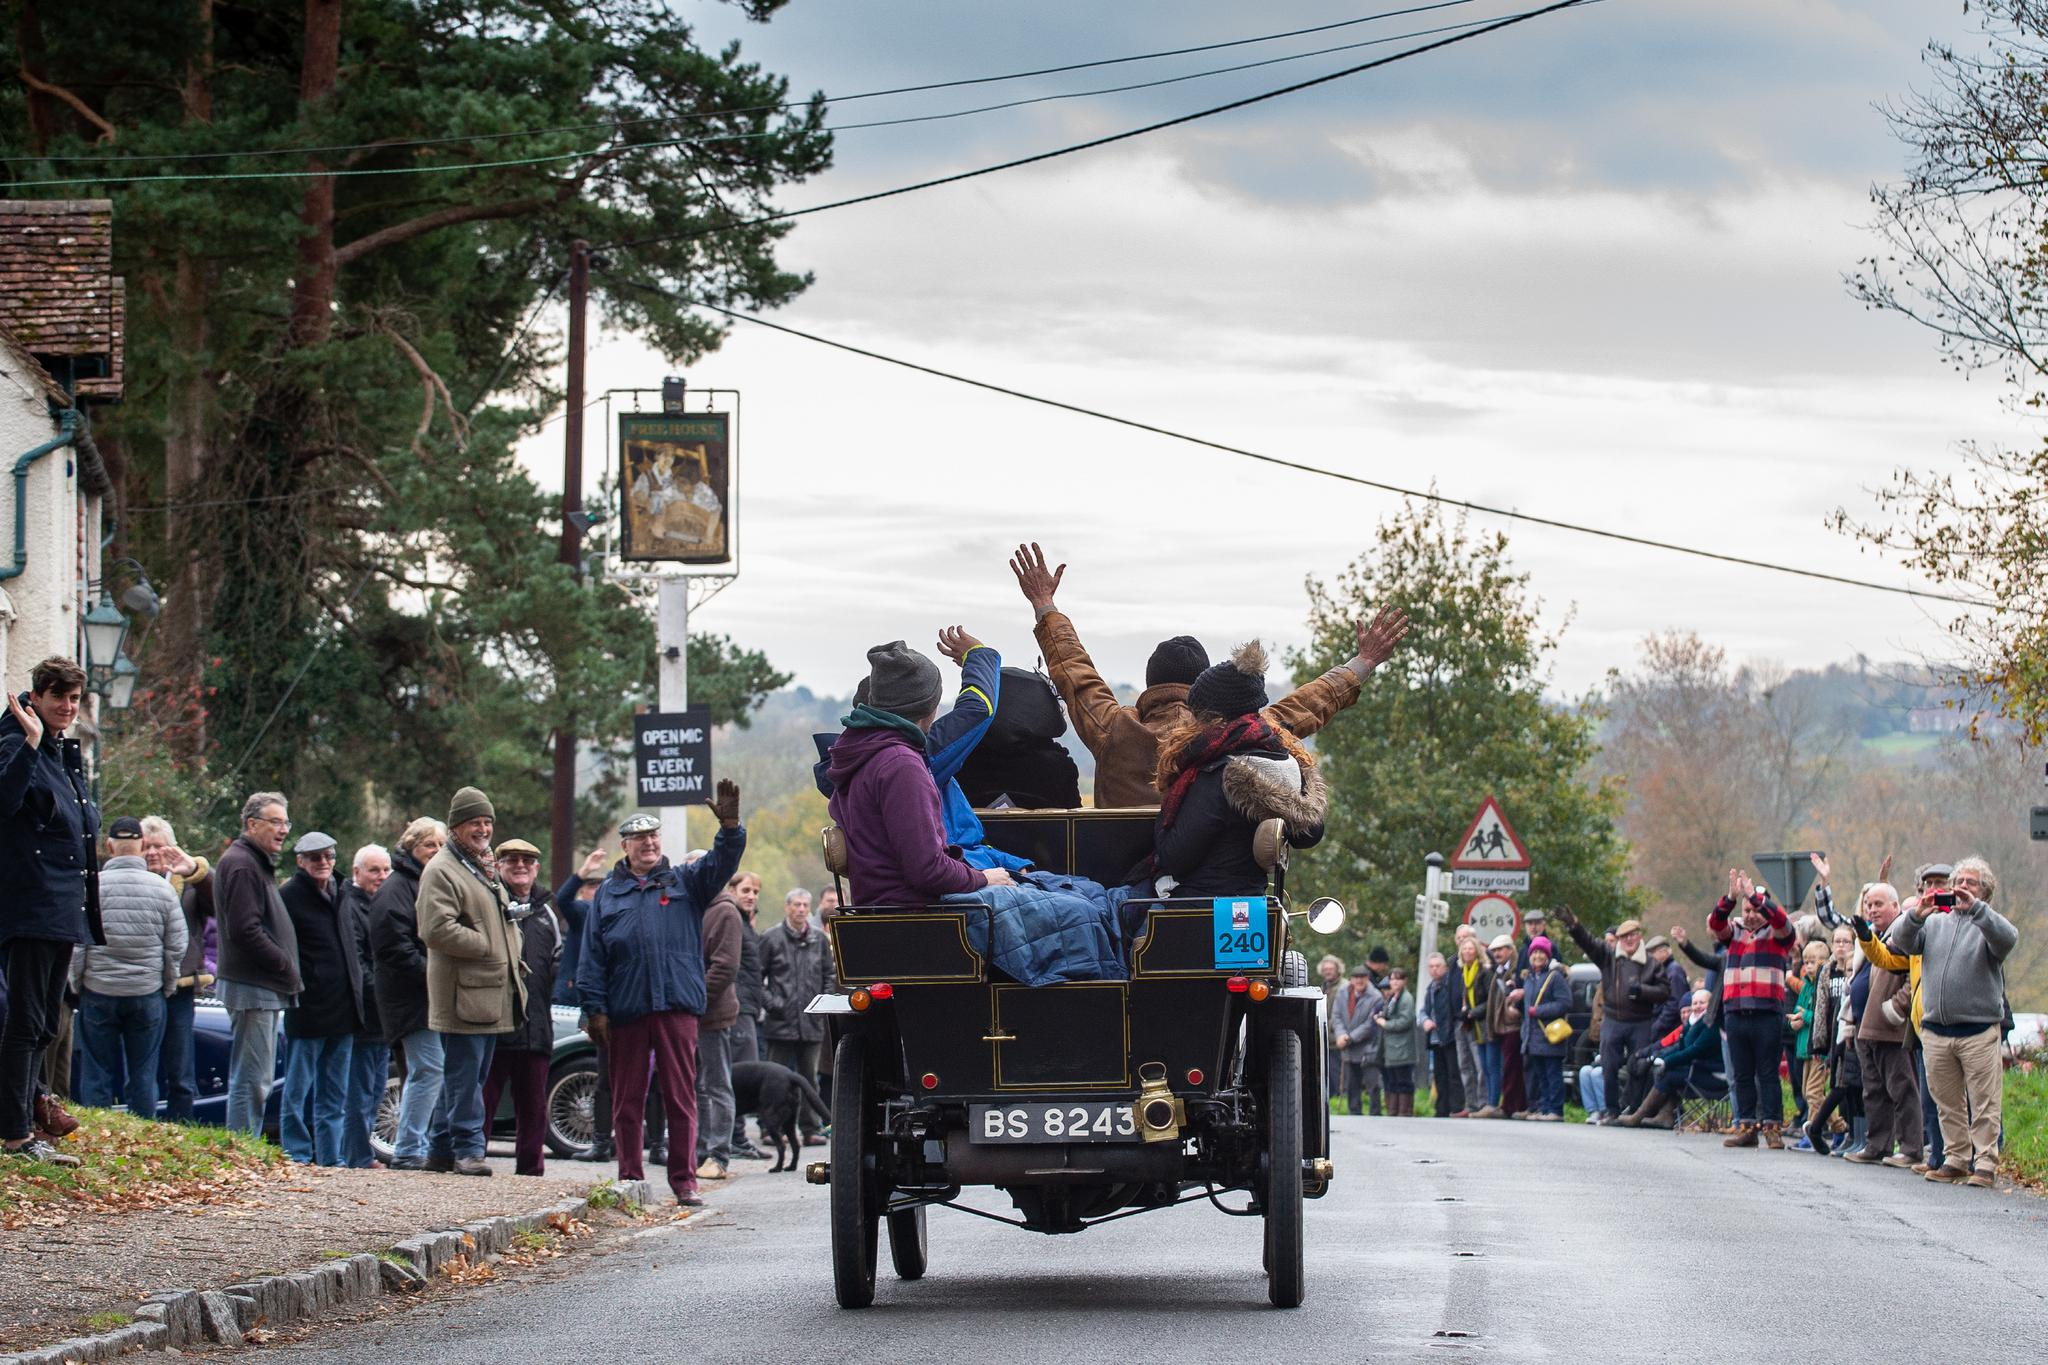 The Bonhams London to Brighton Veteran Car Run